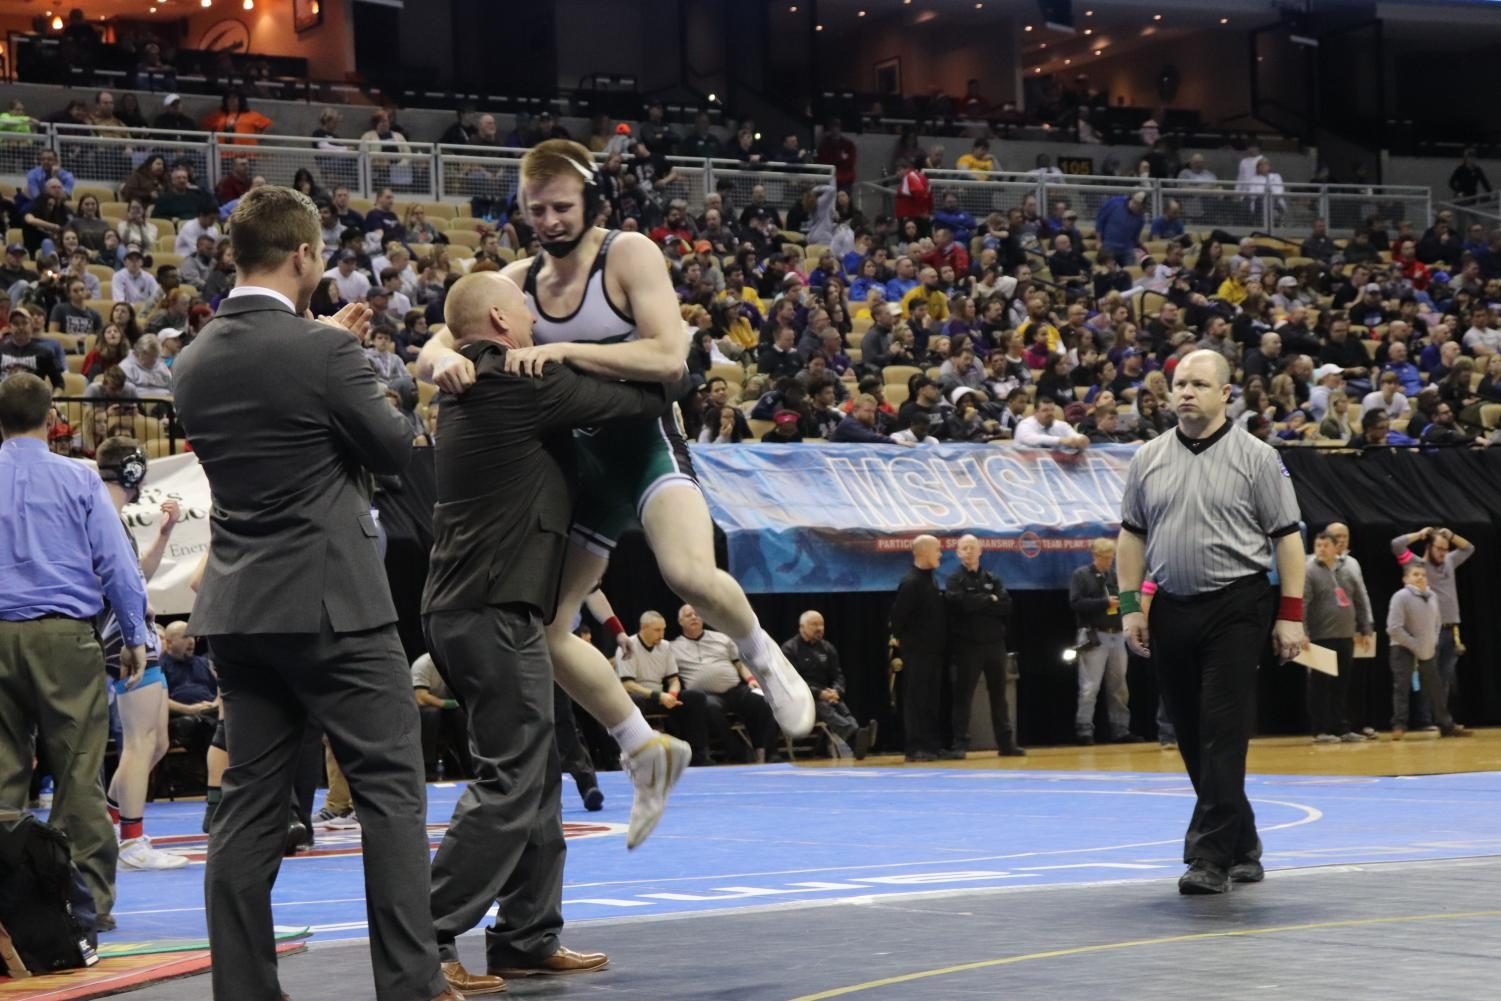 Senior Kolby Estes jumps into the arms of his father and coach after being declared the state champion in the class 152 weight class. Estes won second in state both his sophomore and junior years.